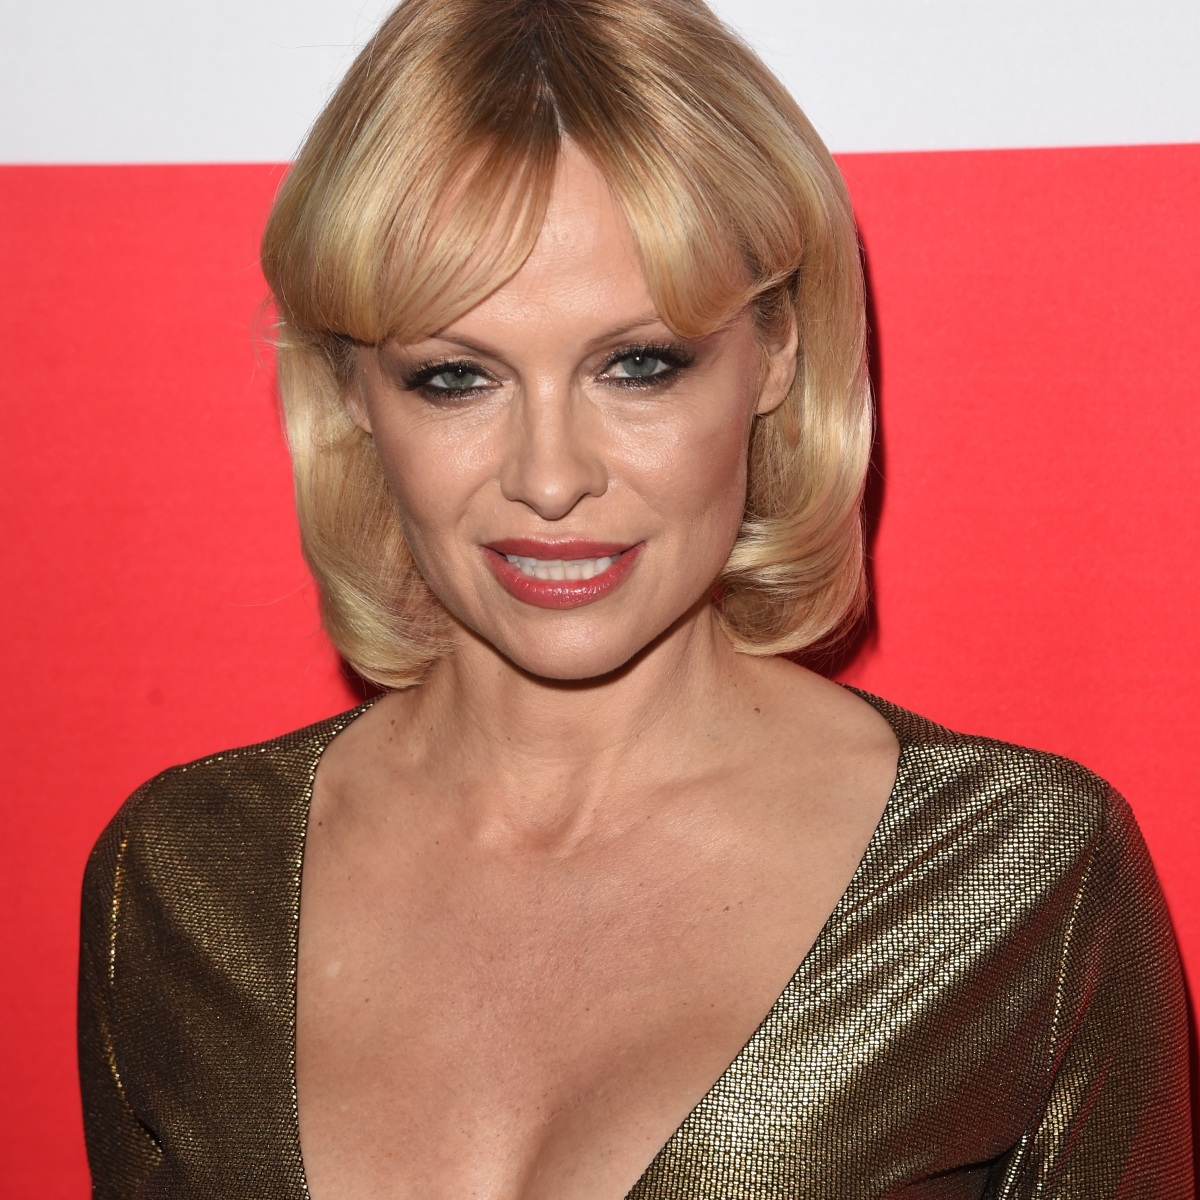 Pamela Anderson Before and After Plastic Surgery — See New Pics!